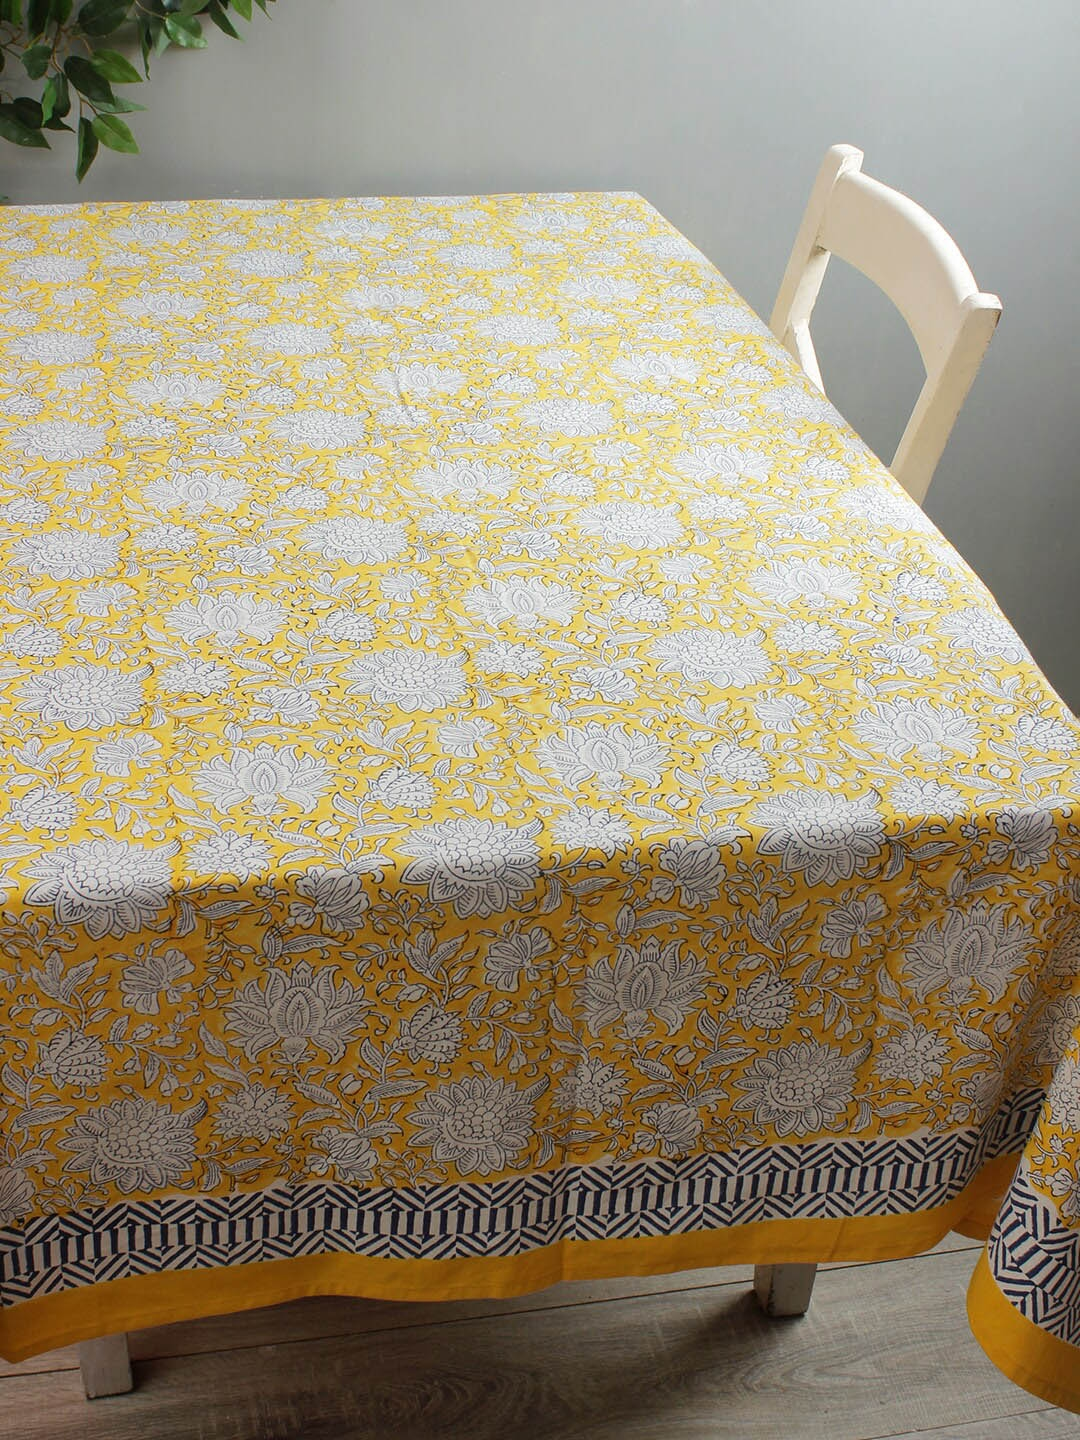 Rajasthan Decor Yellow   White Floral Printed 6 Seater Table Cover